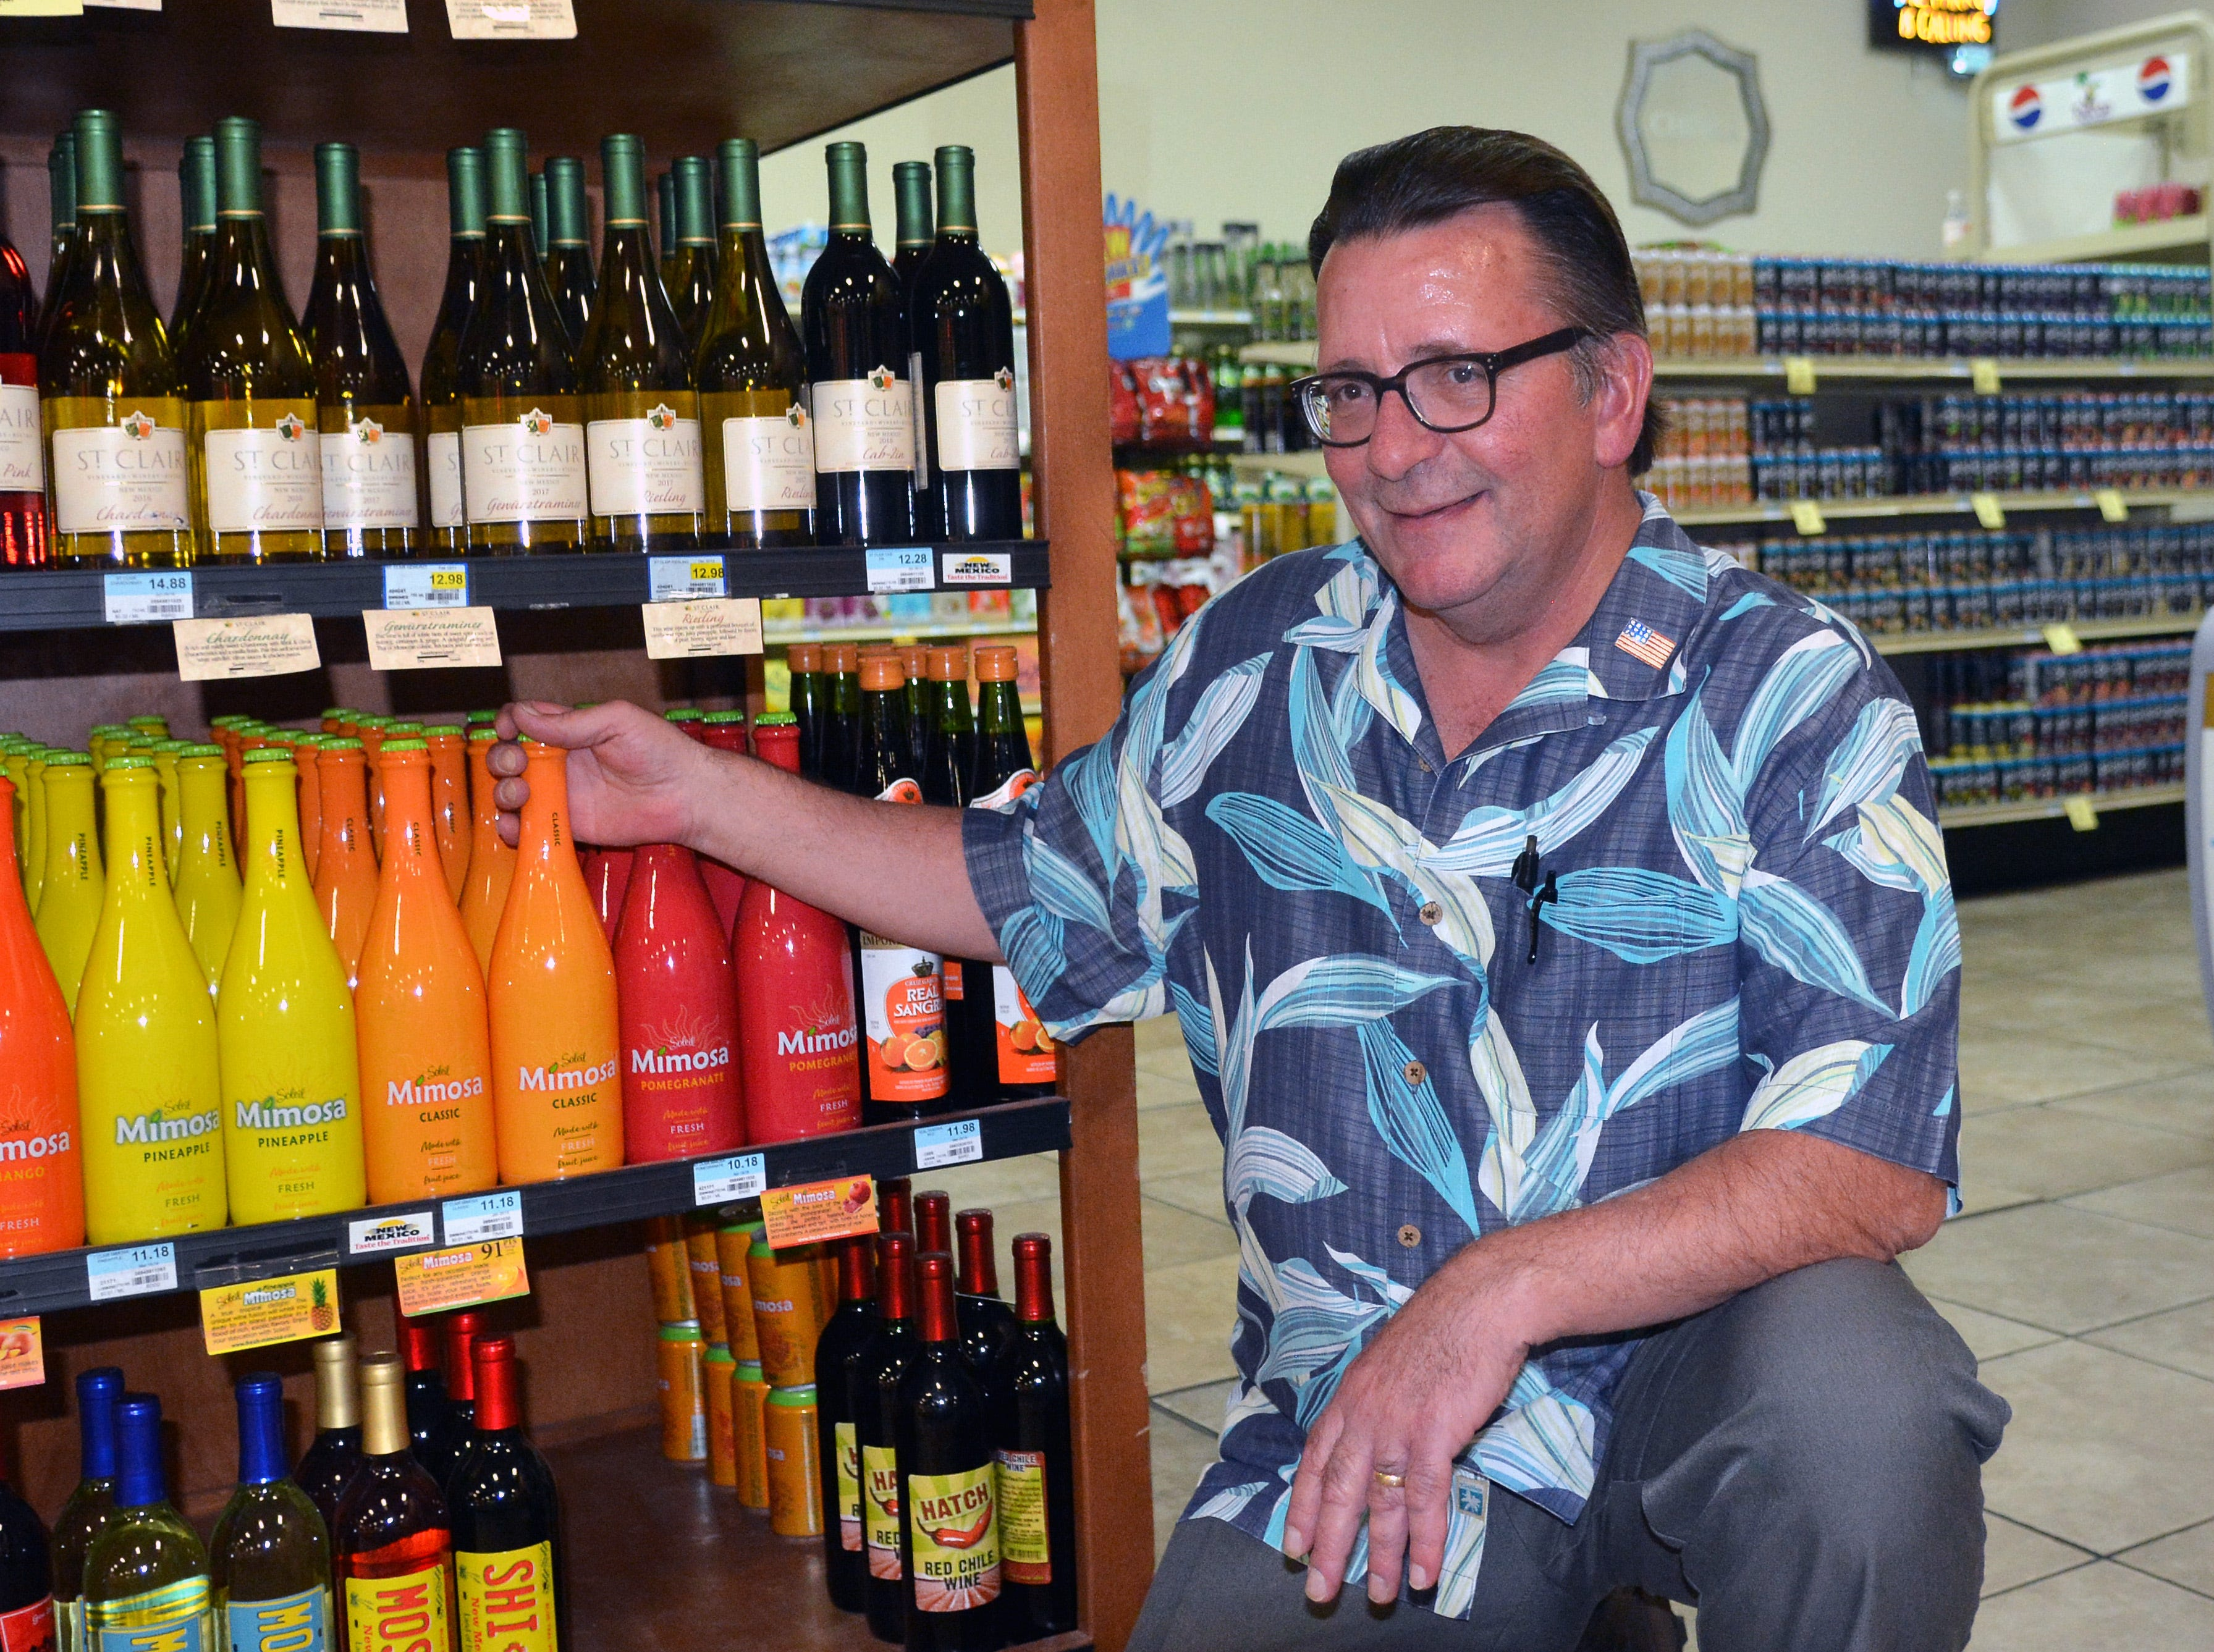 Toucan Market co-owner Bob Baur shows off one of the many locally produced bottles of wine carried at his store on August 29, 2018.